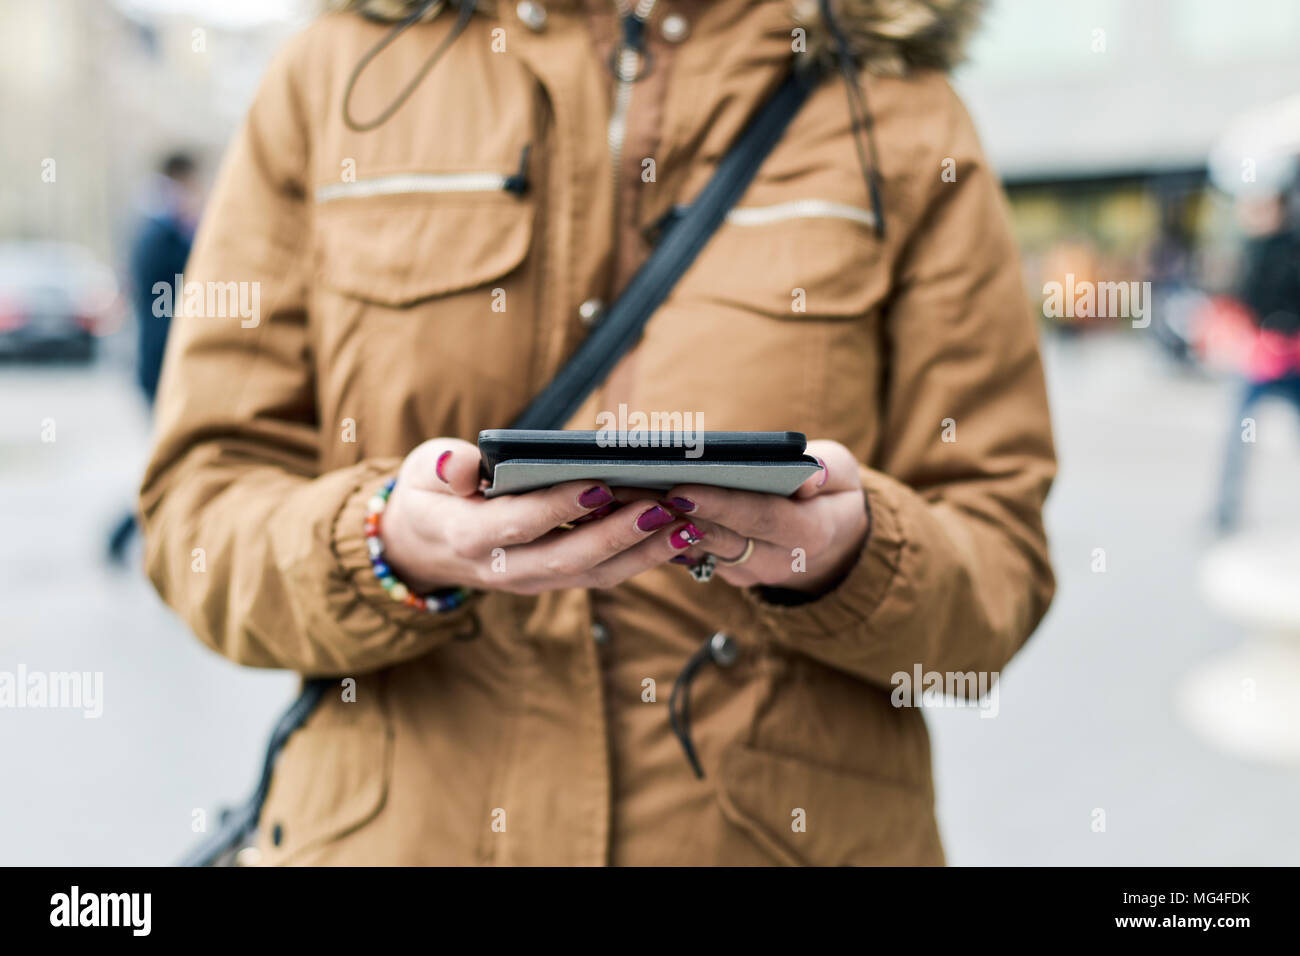 closeup of a young caucasian woman, with her fingernails painted purple, using a tablet in the street Stock Photo